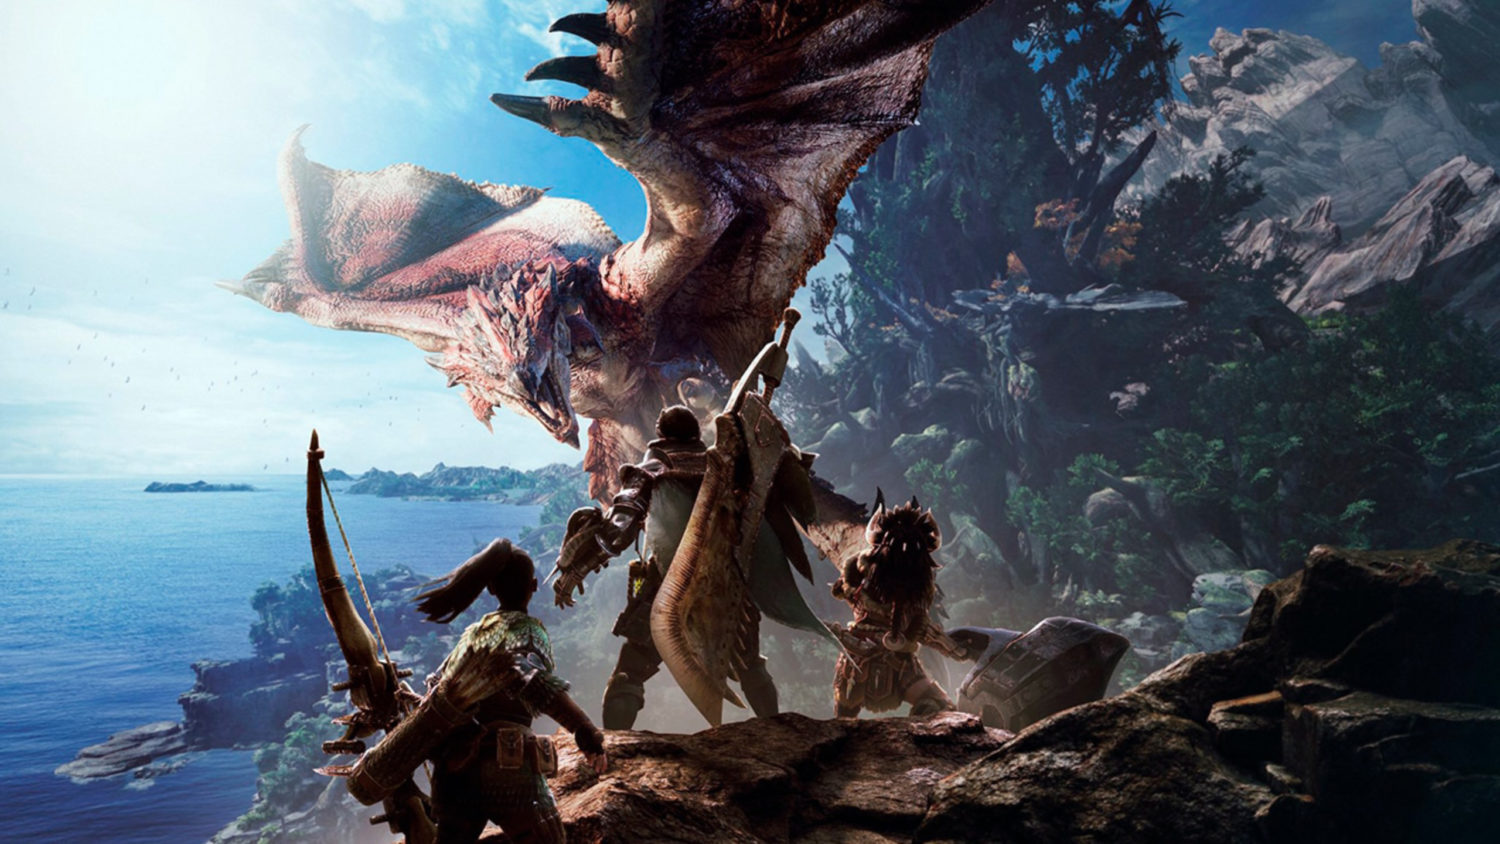 Monster Hunter World encabezado